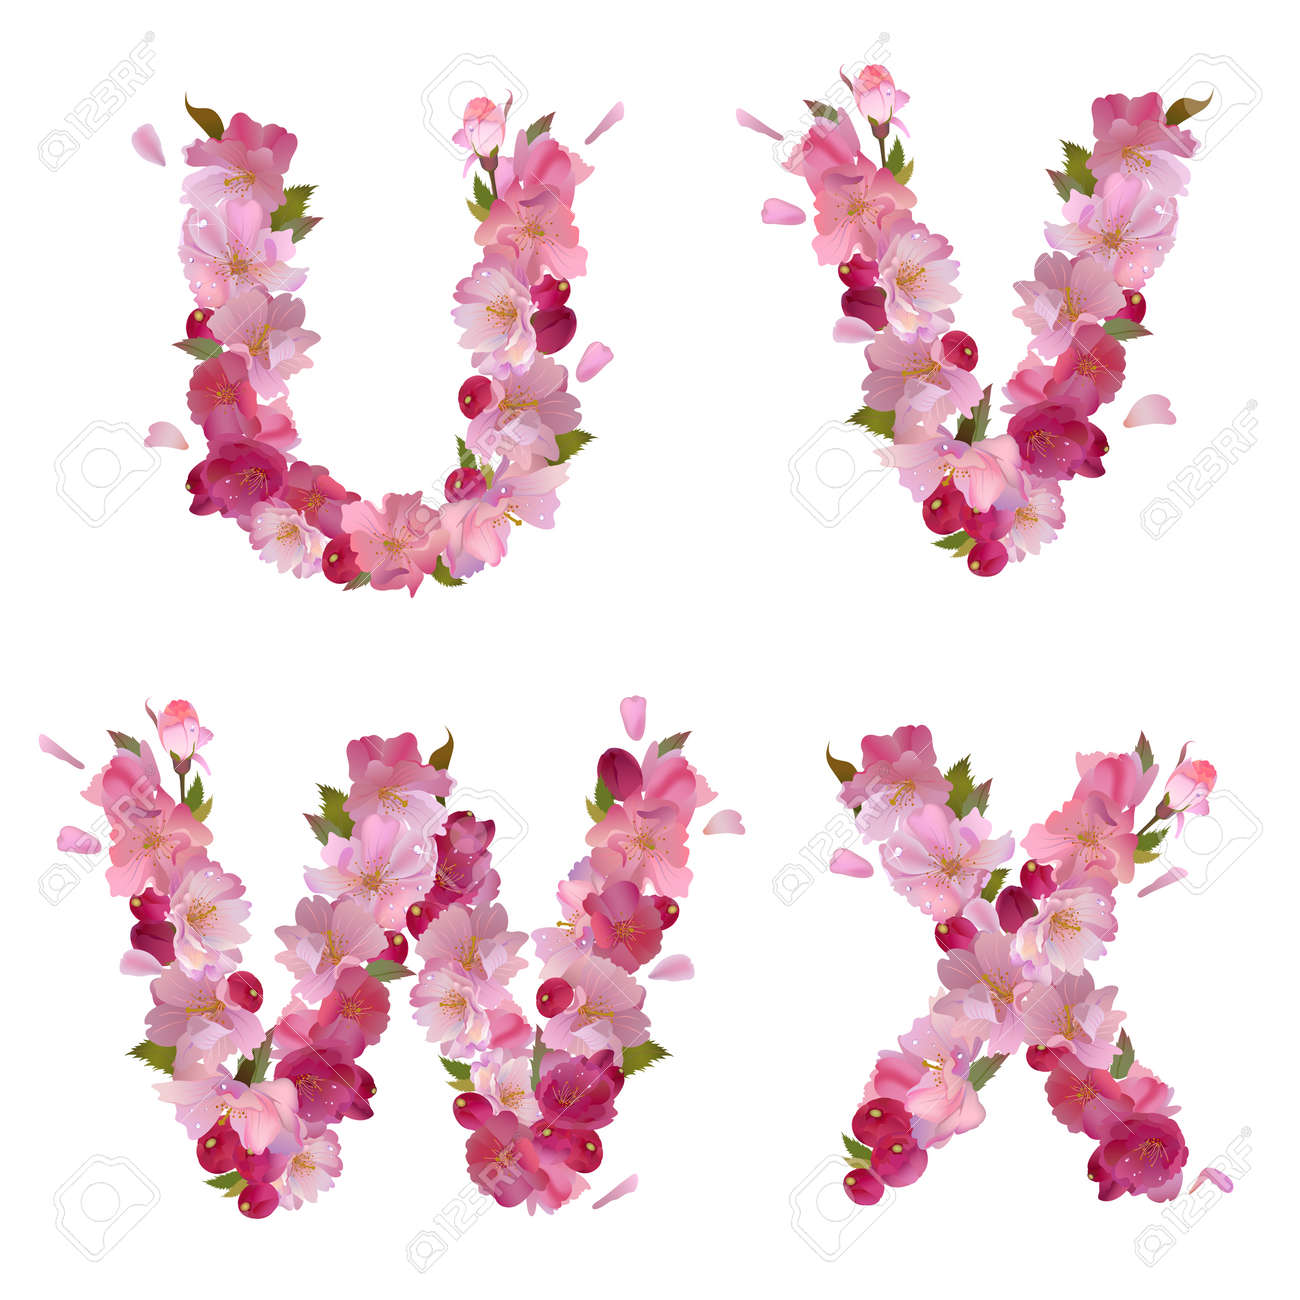 Spring Alphabet With Gentle Pink Sakura Flowers Letters U V W X